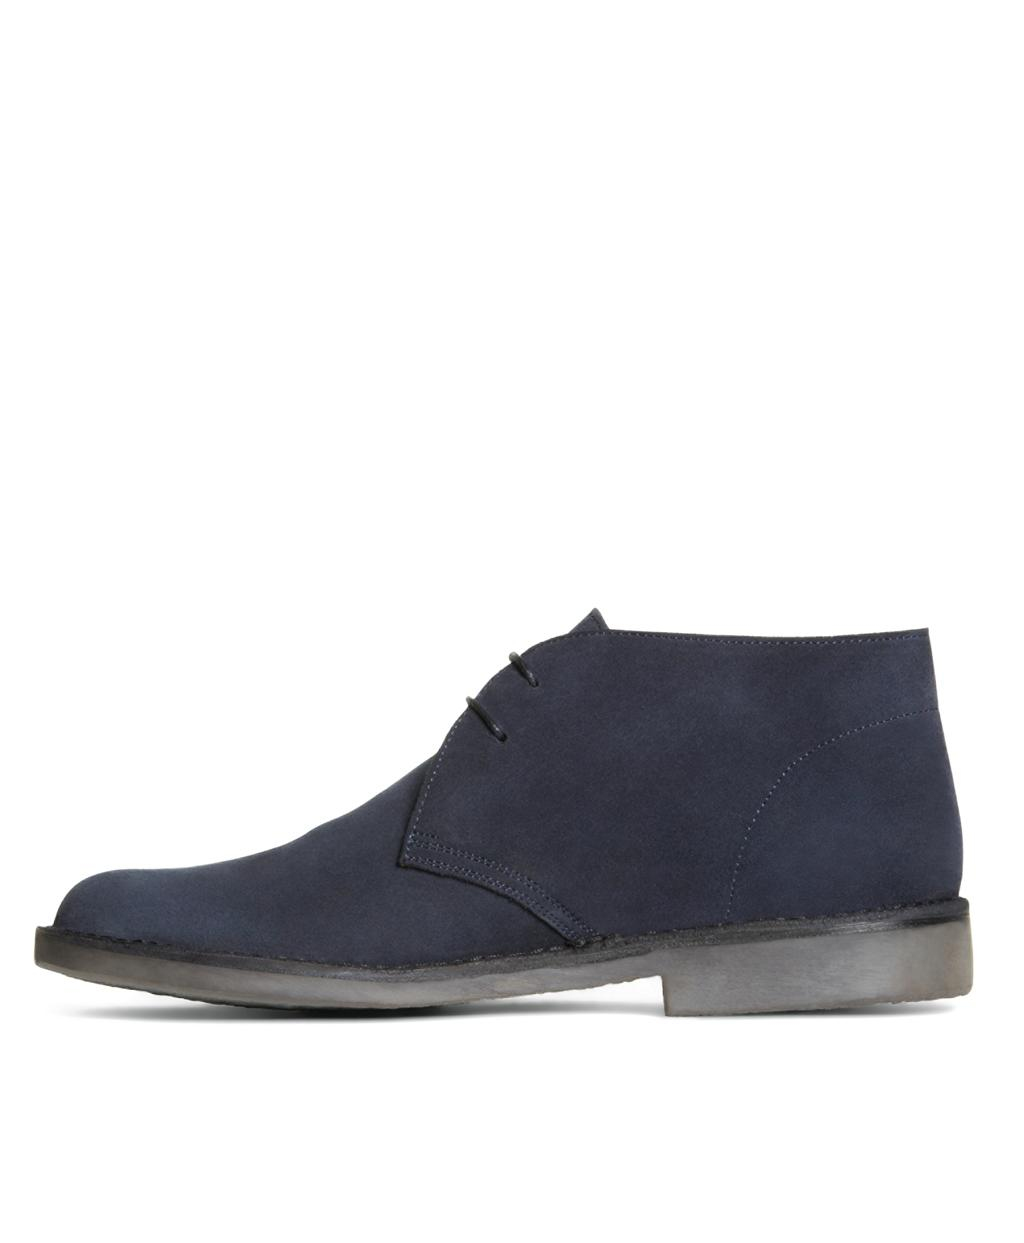 79377dc3098 Lyst - Brooks Brothers Field Chukka Boots in Blue for Men